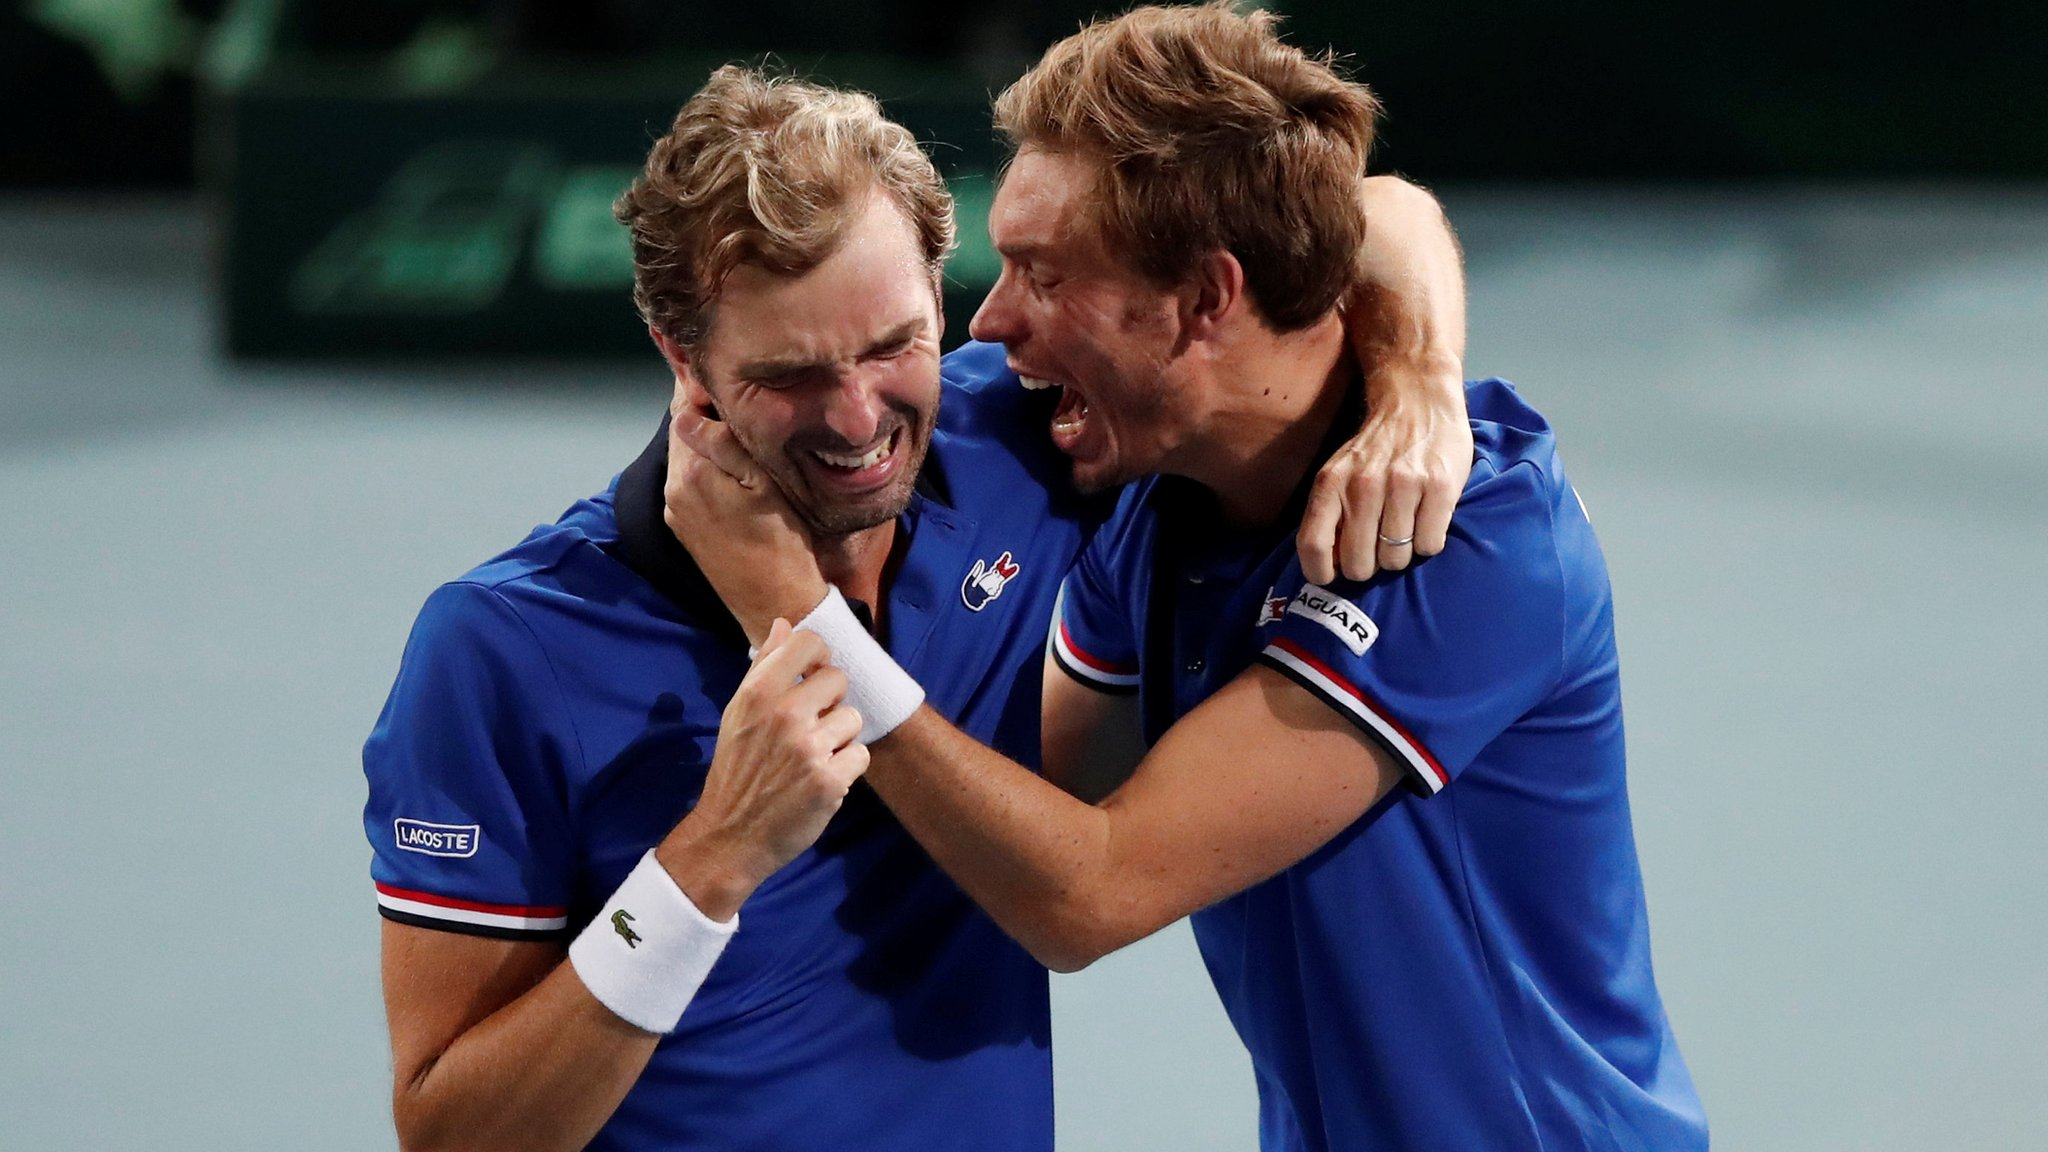 Davis Cup: France beat Spain 3-0 to secure place in final